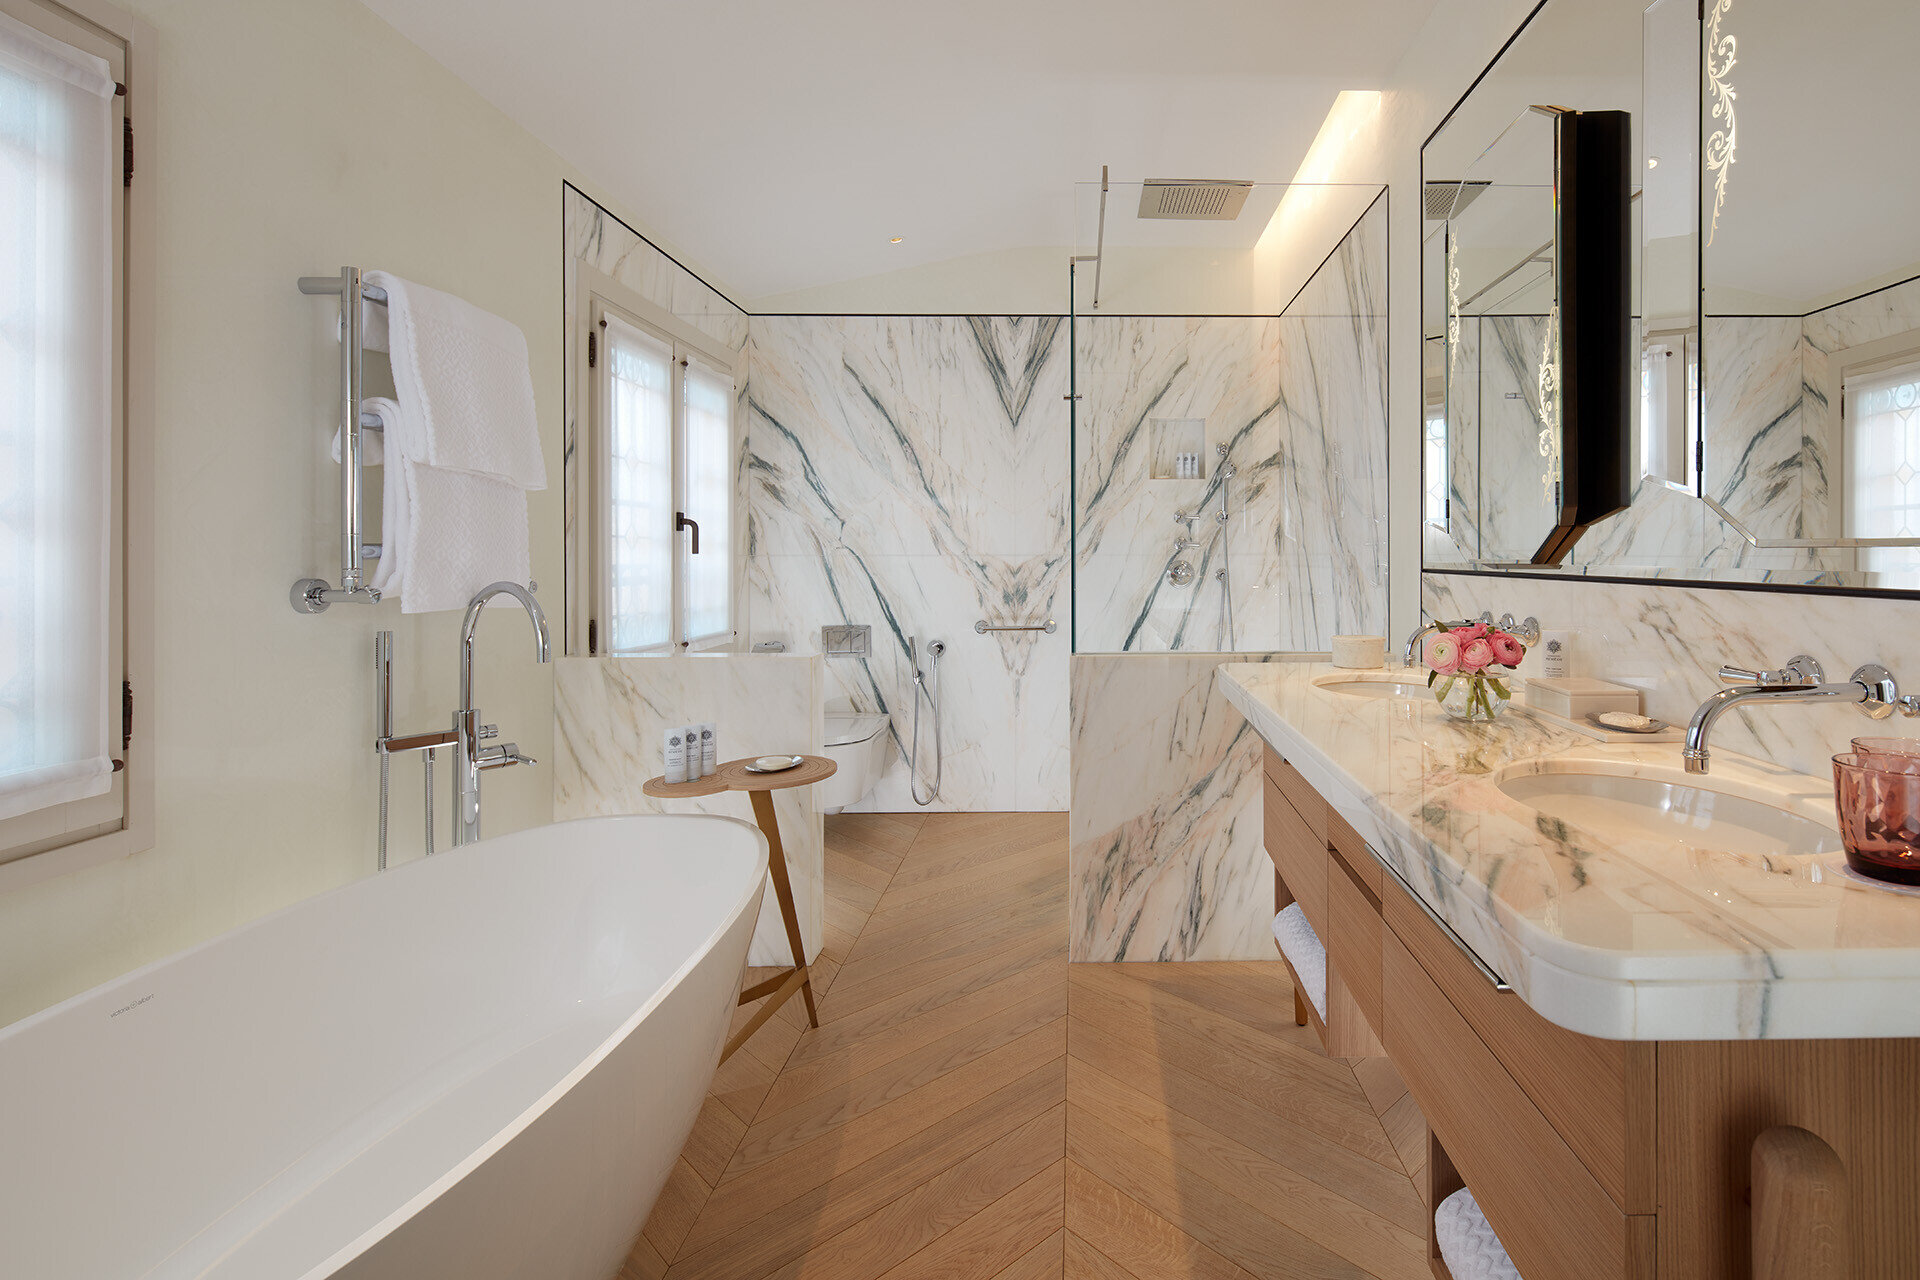 St Regis Hotel Venice by SCE Project